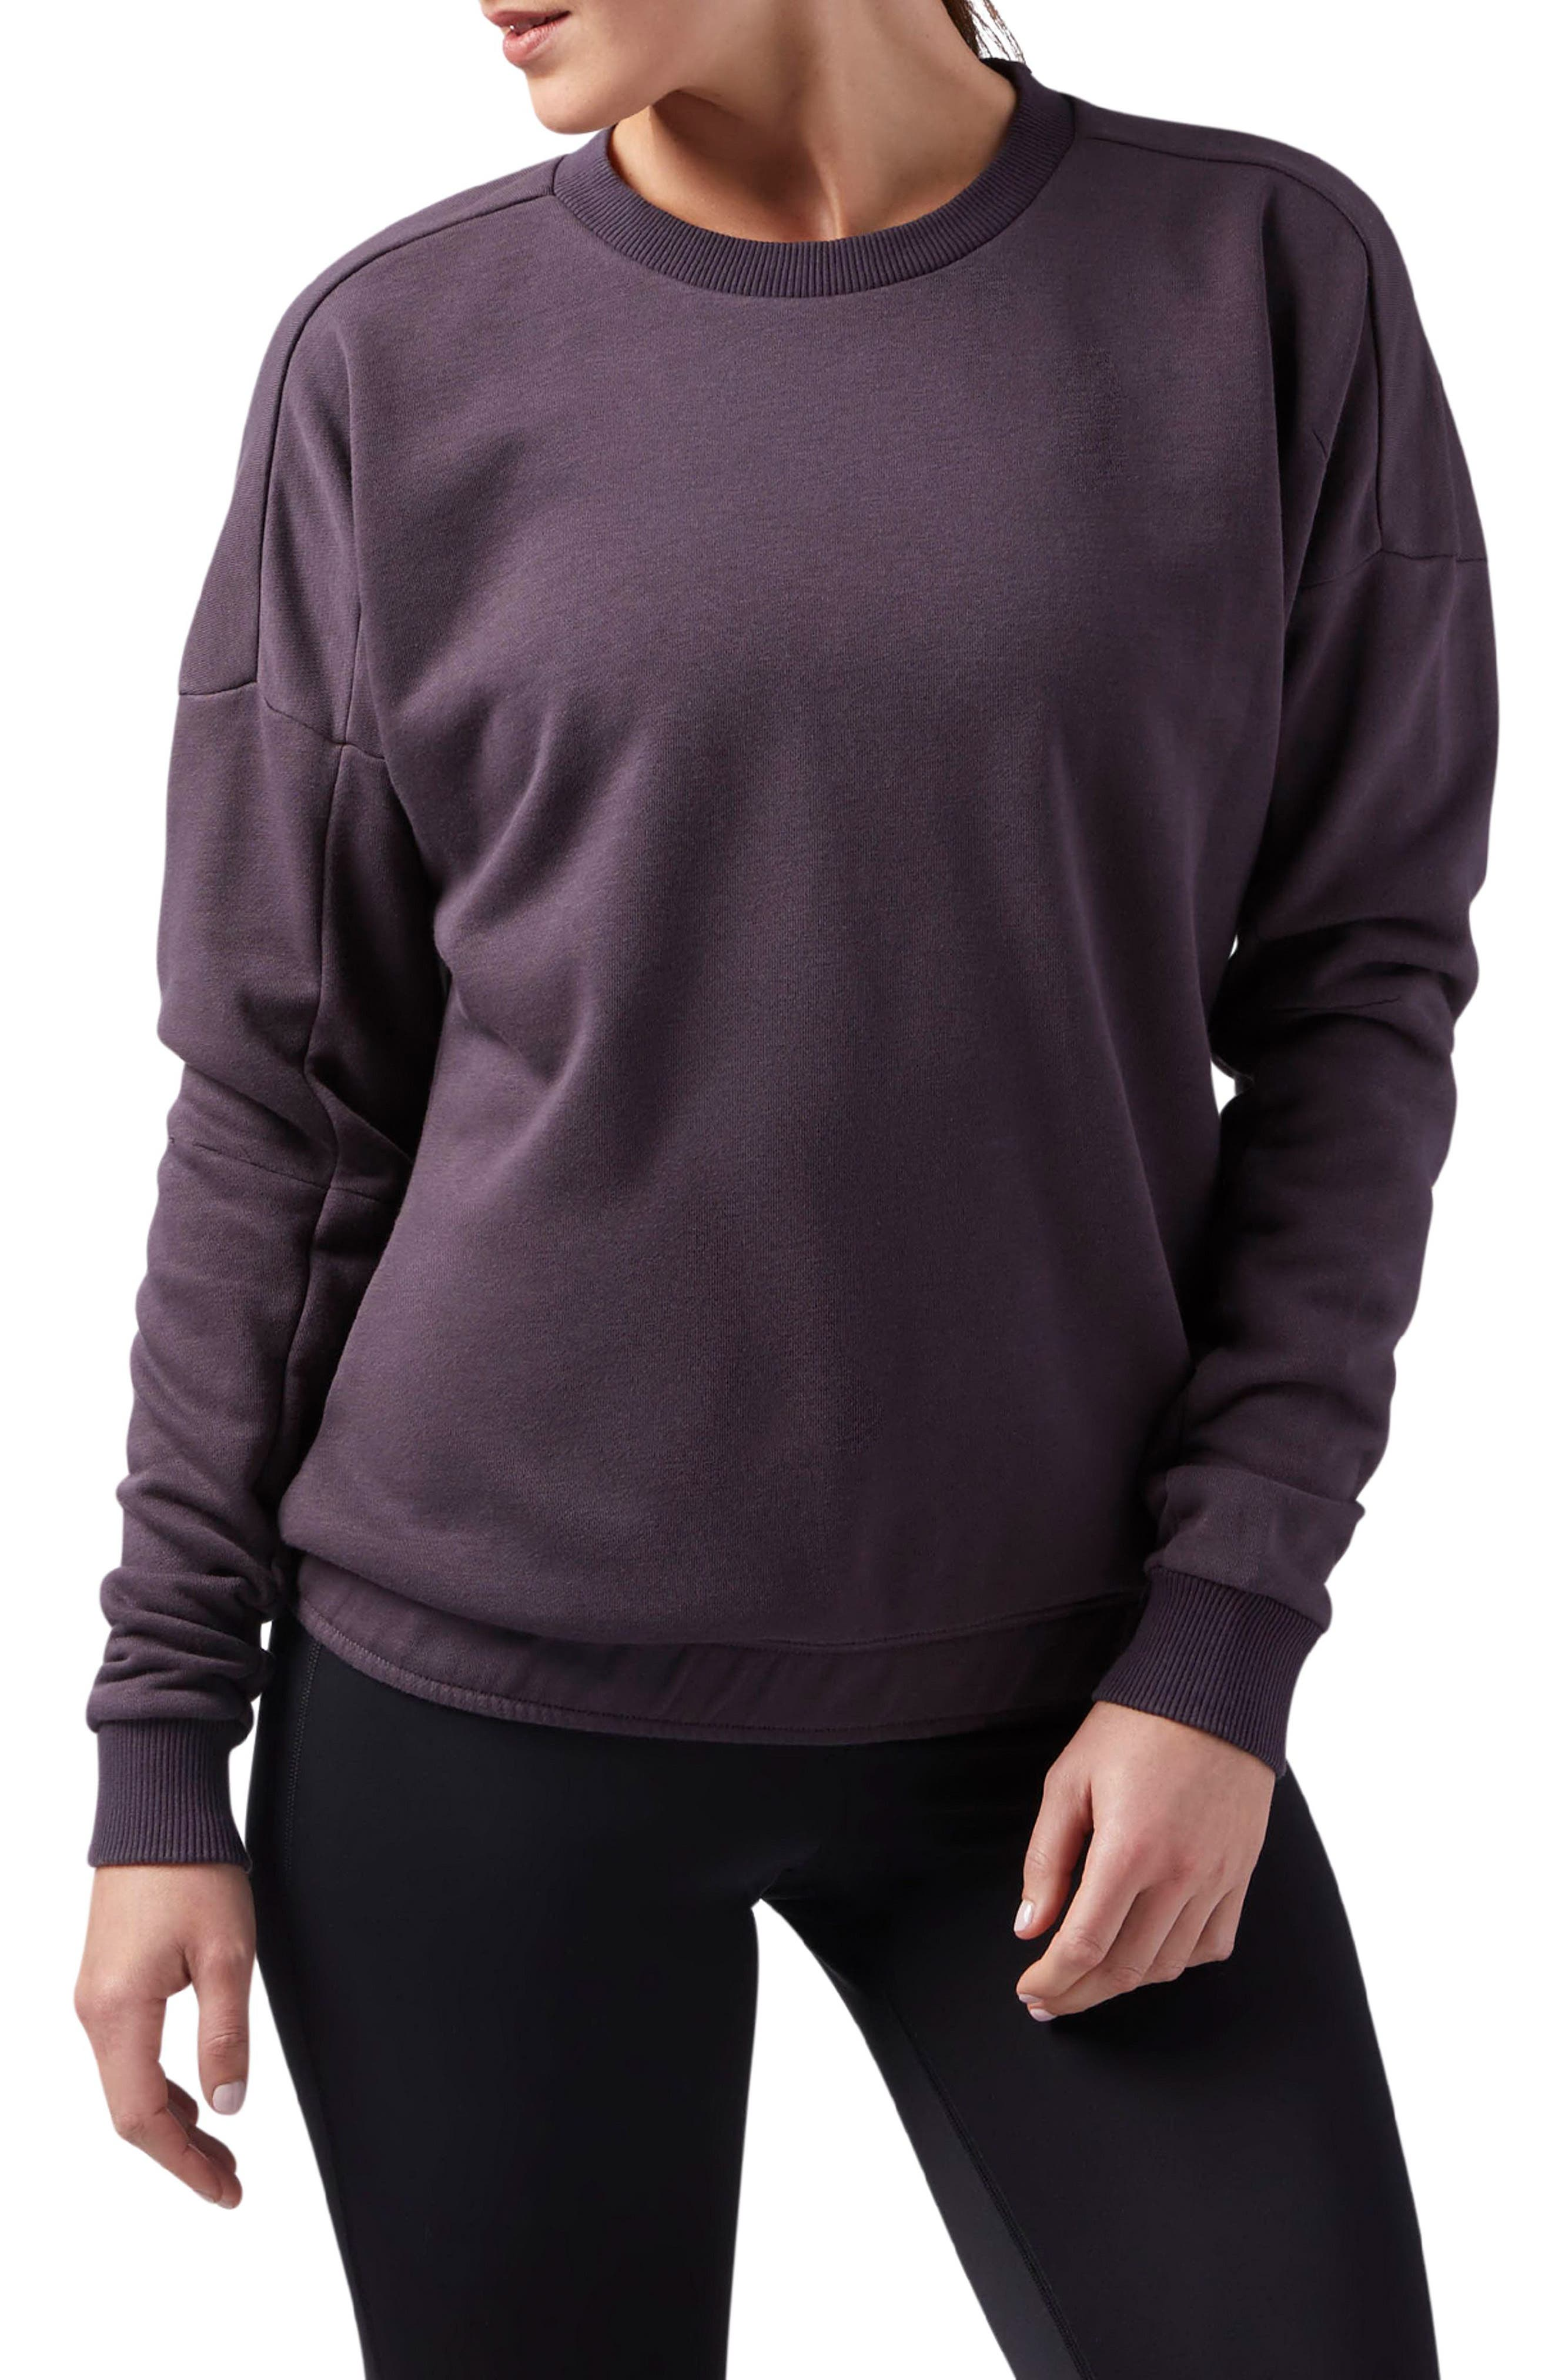 Elements Washed Sweatshirt,                             Main thumbnail 1, color,                             501